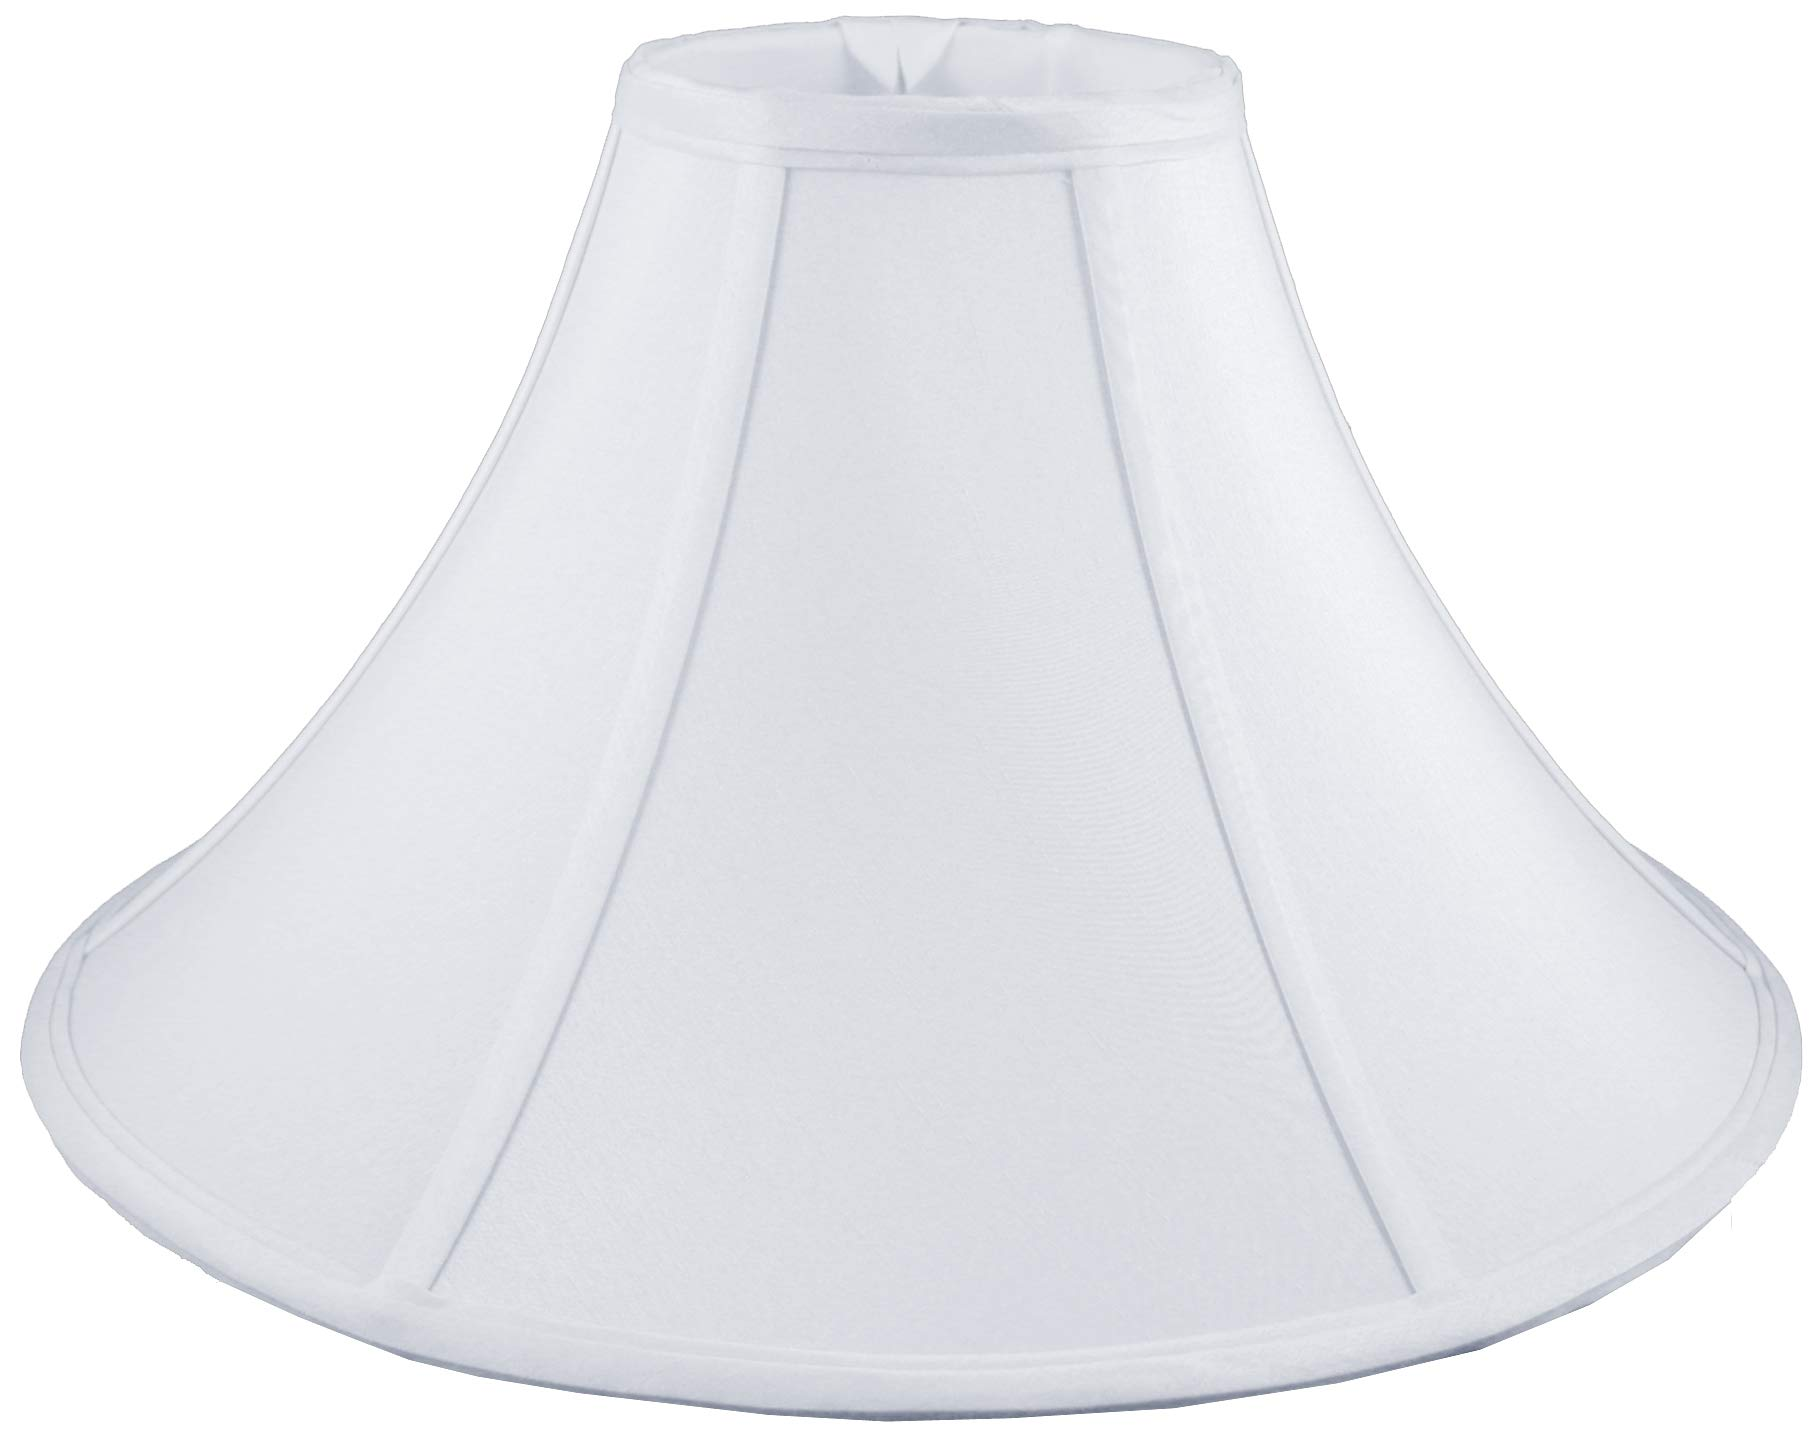 American Pride 7''x 18''x 12'' Round Soft Shantung Tailored Lampshade, White